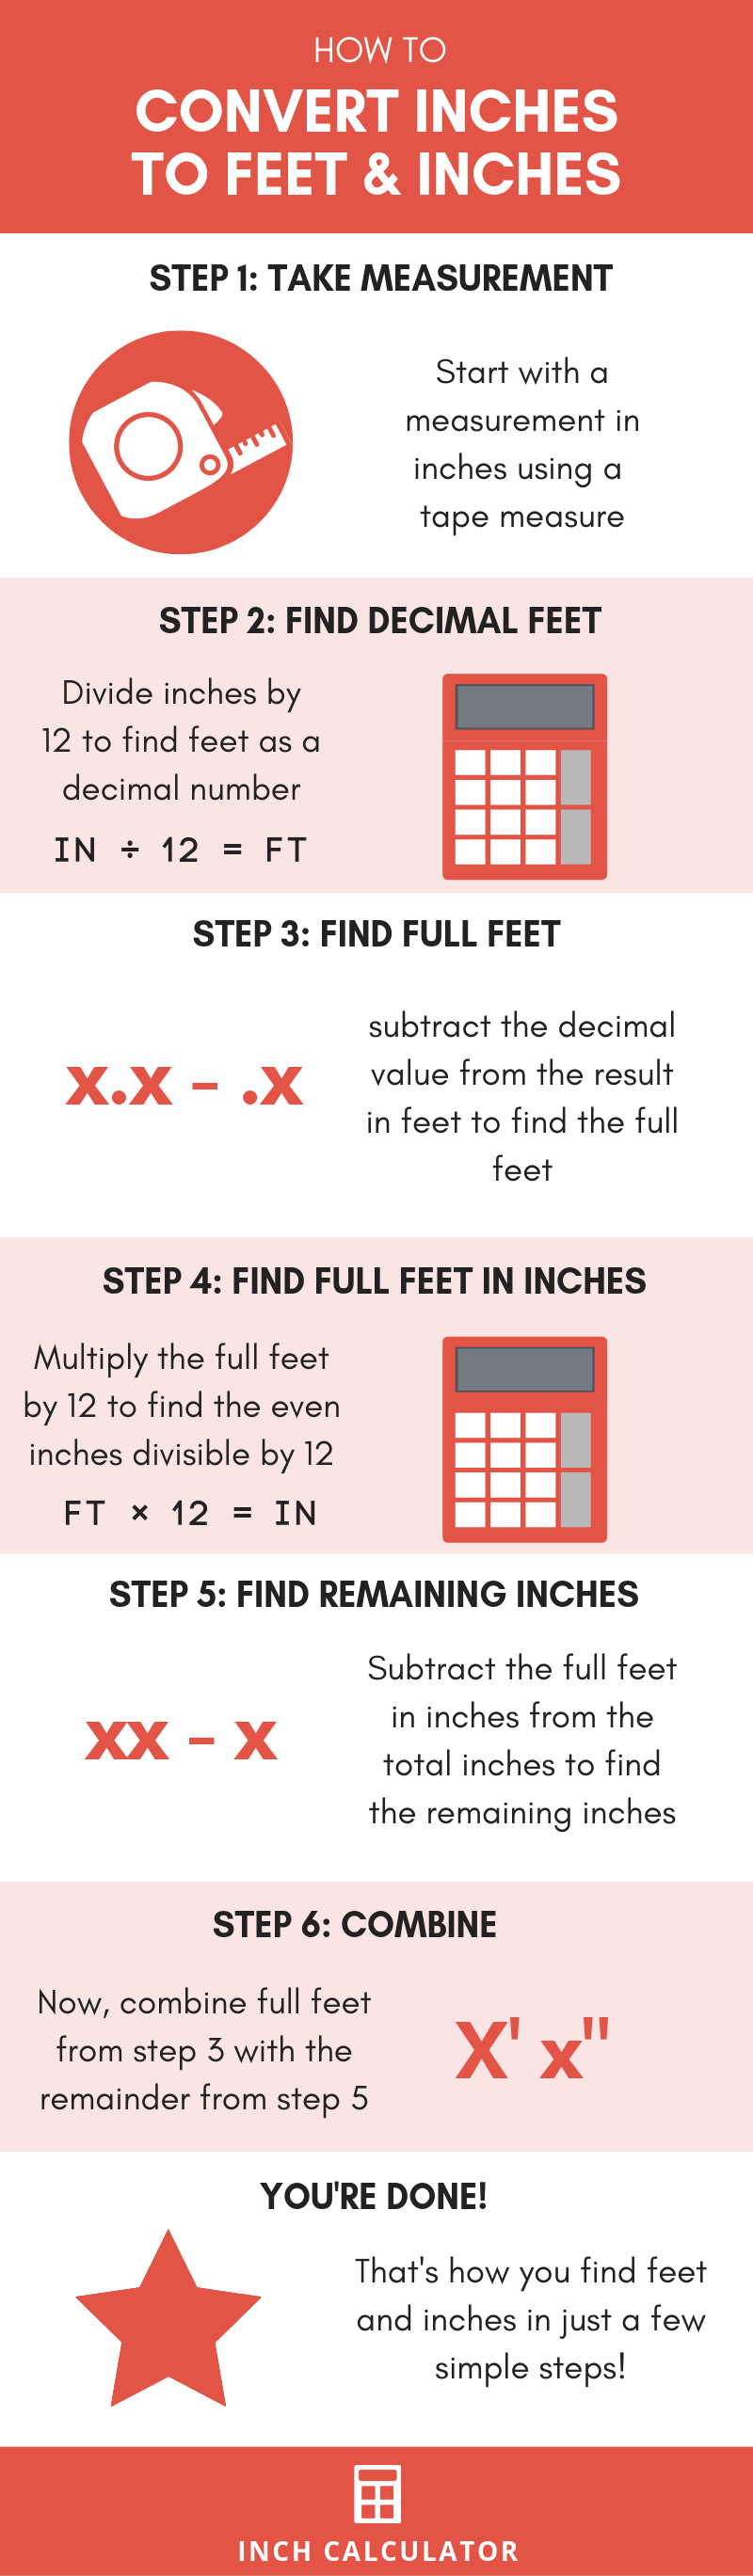 infographic showing how to convert inches to feet and inches